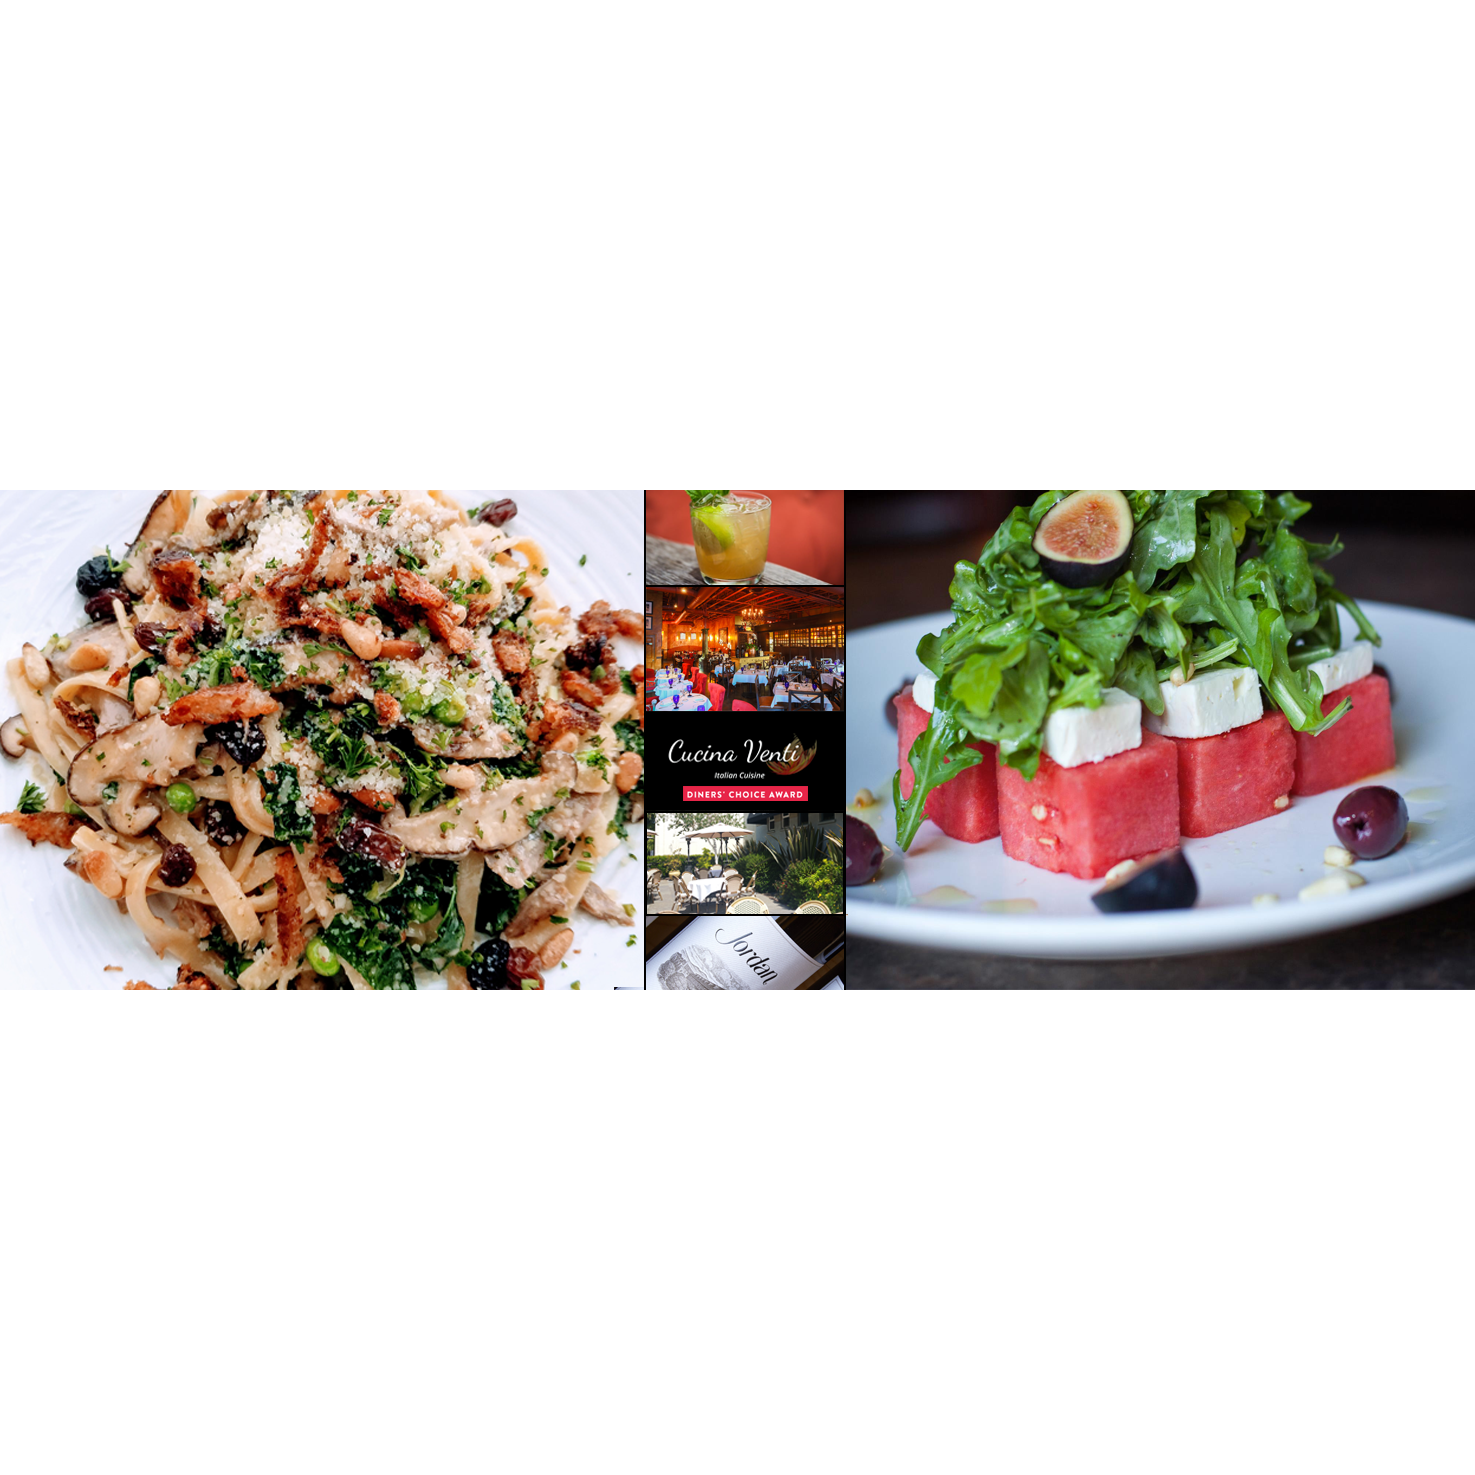 Discount coupons for restaurants near me